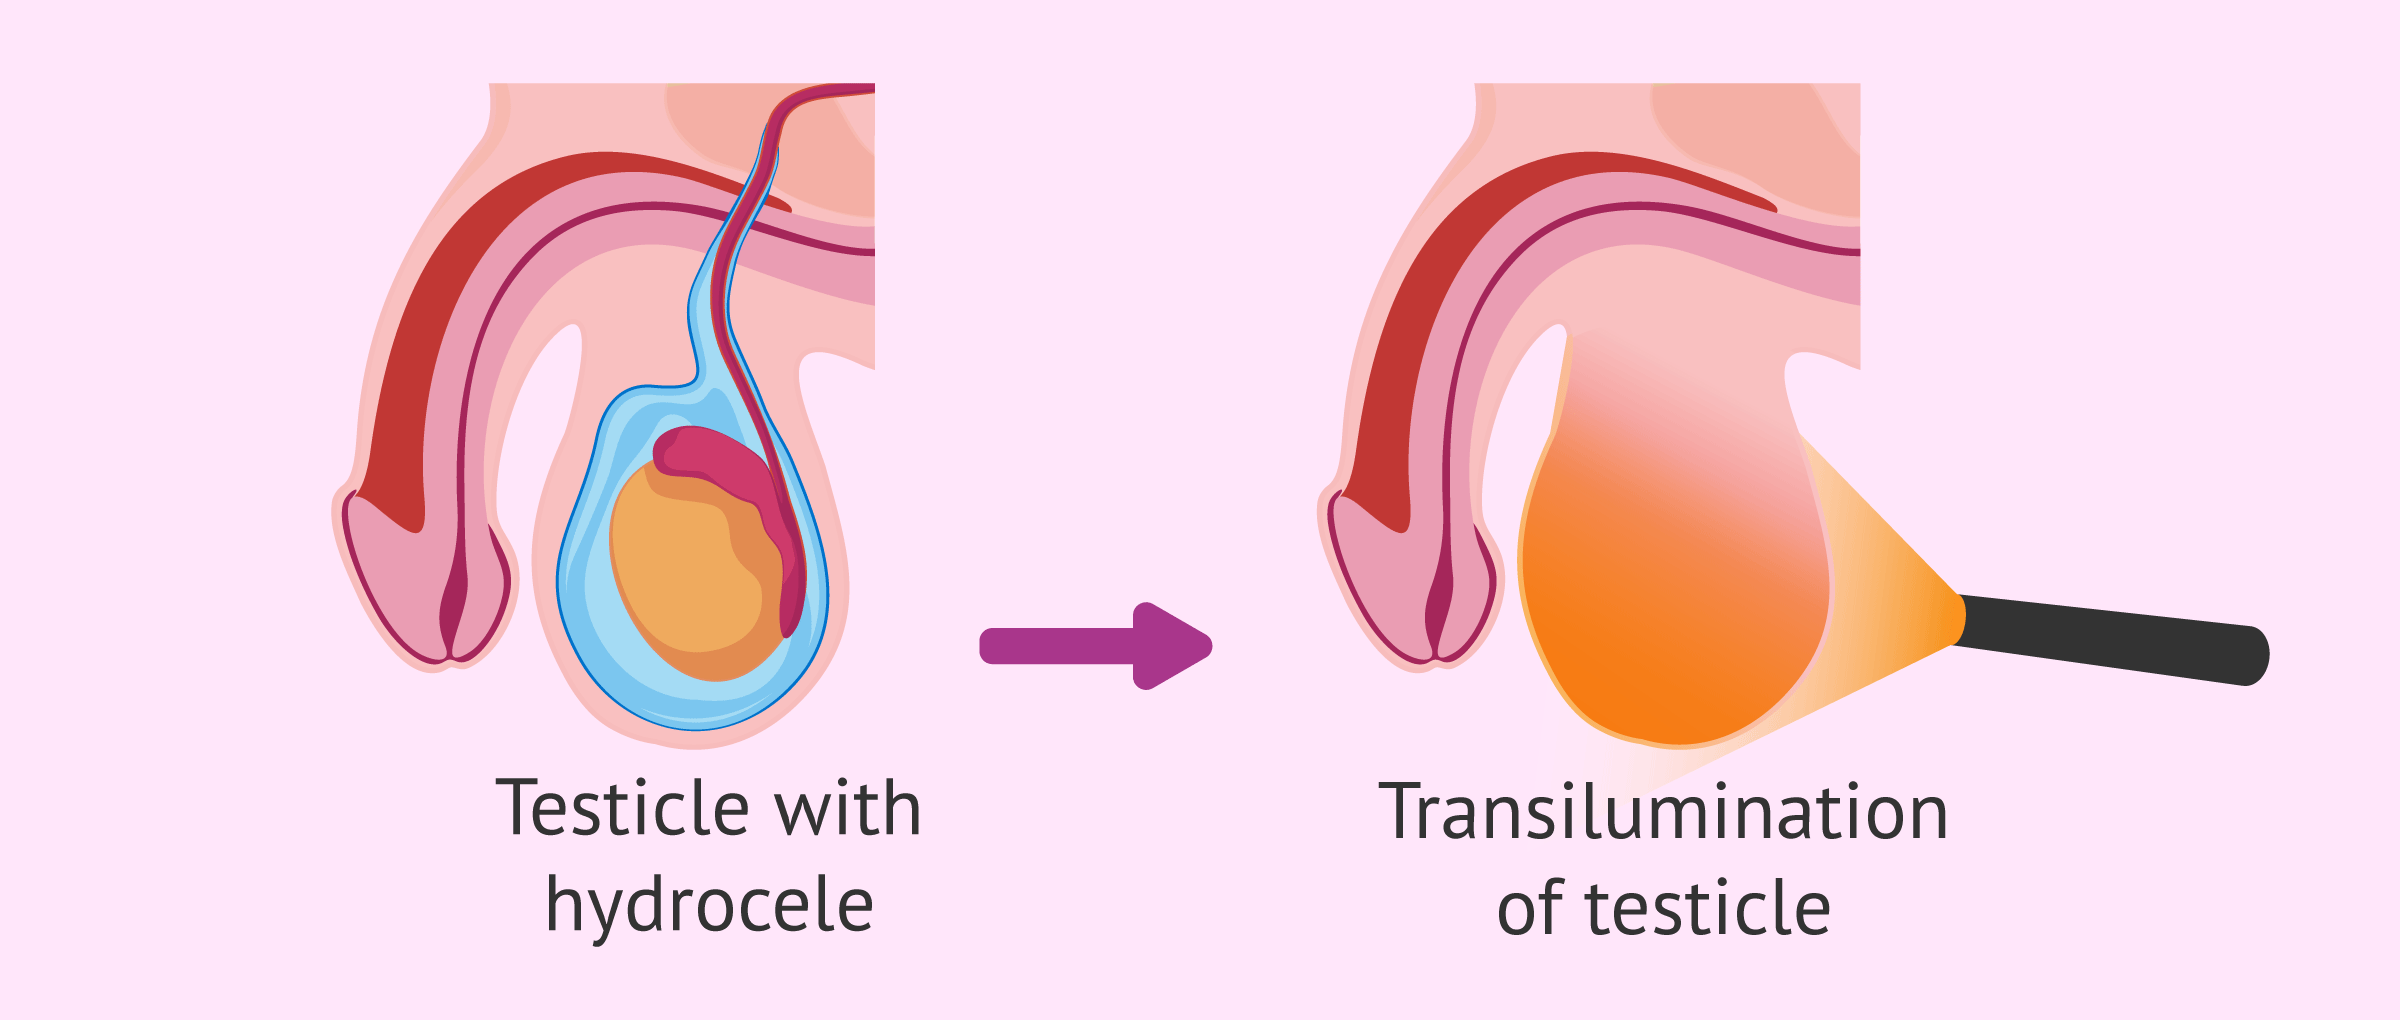 Imagen: Transilumination of the testicle